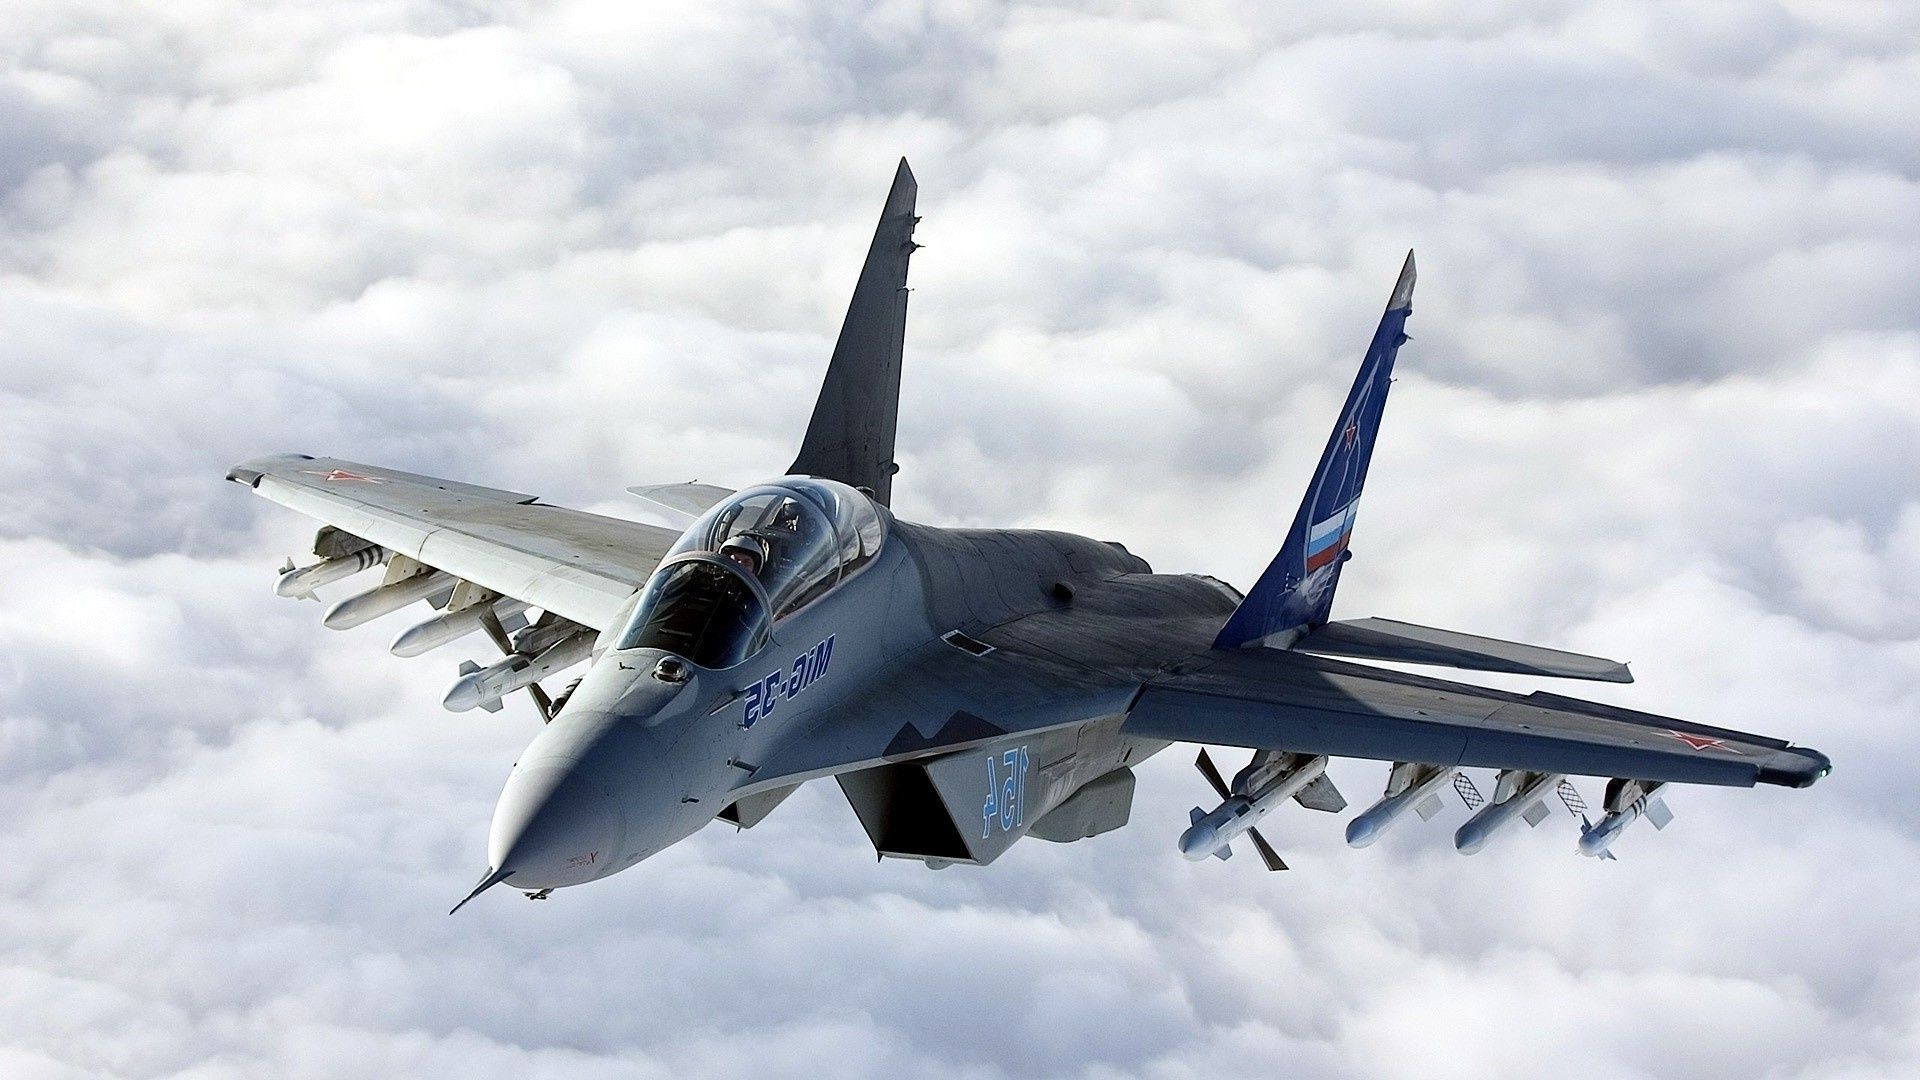 35 Fulcrum F MiG Aircraft Wallpaper Smemale